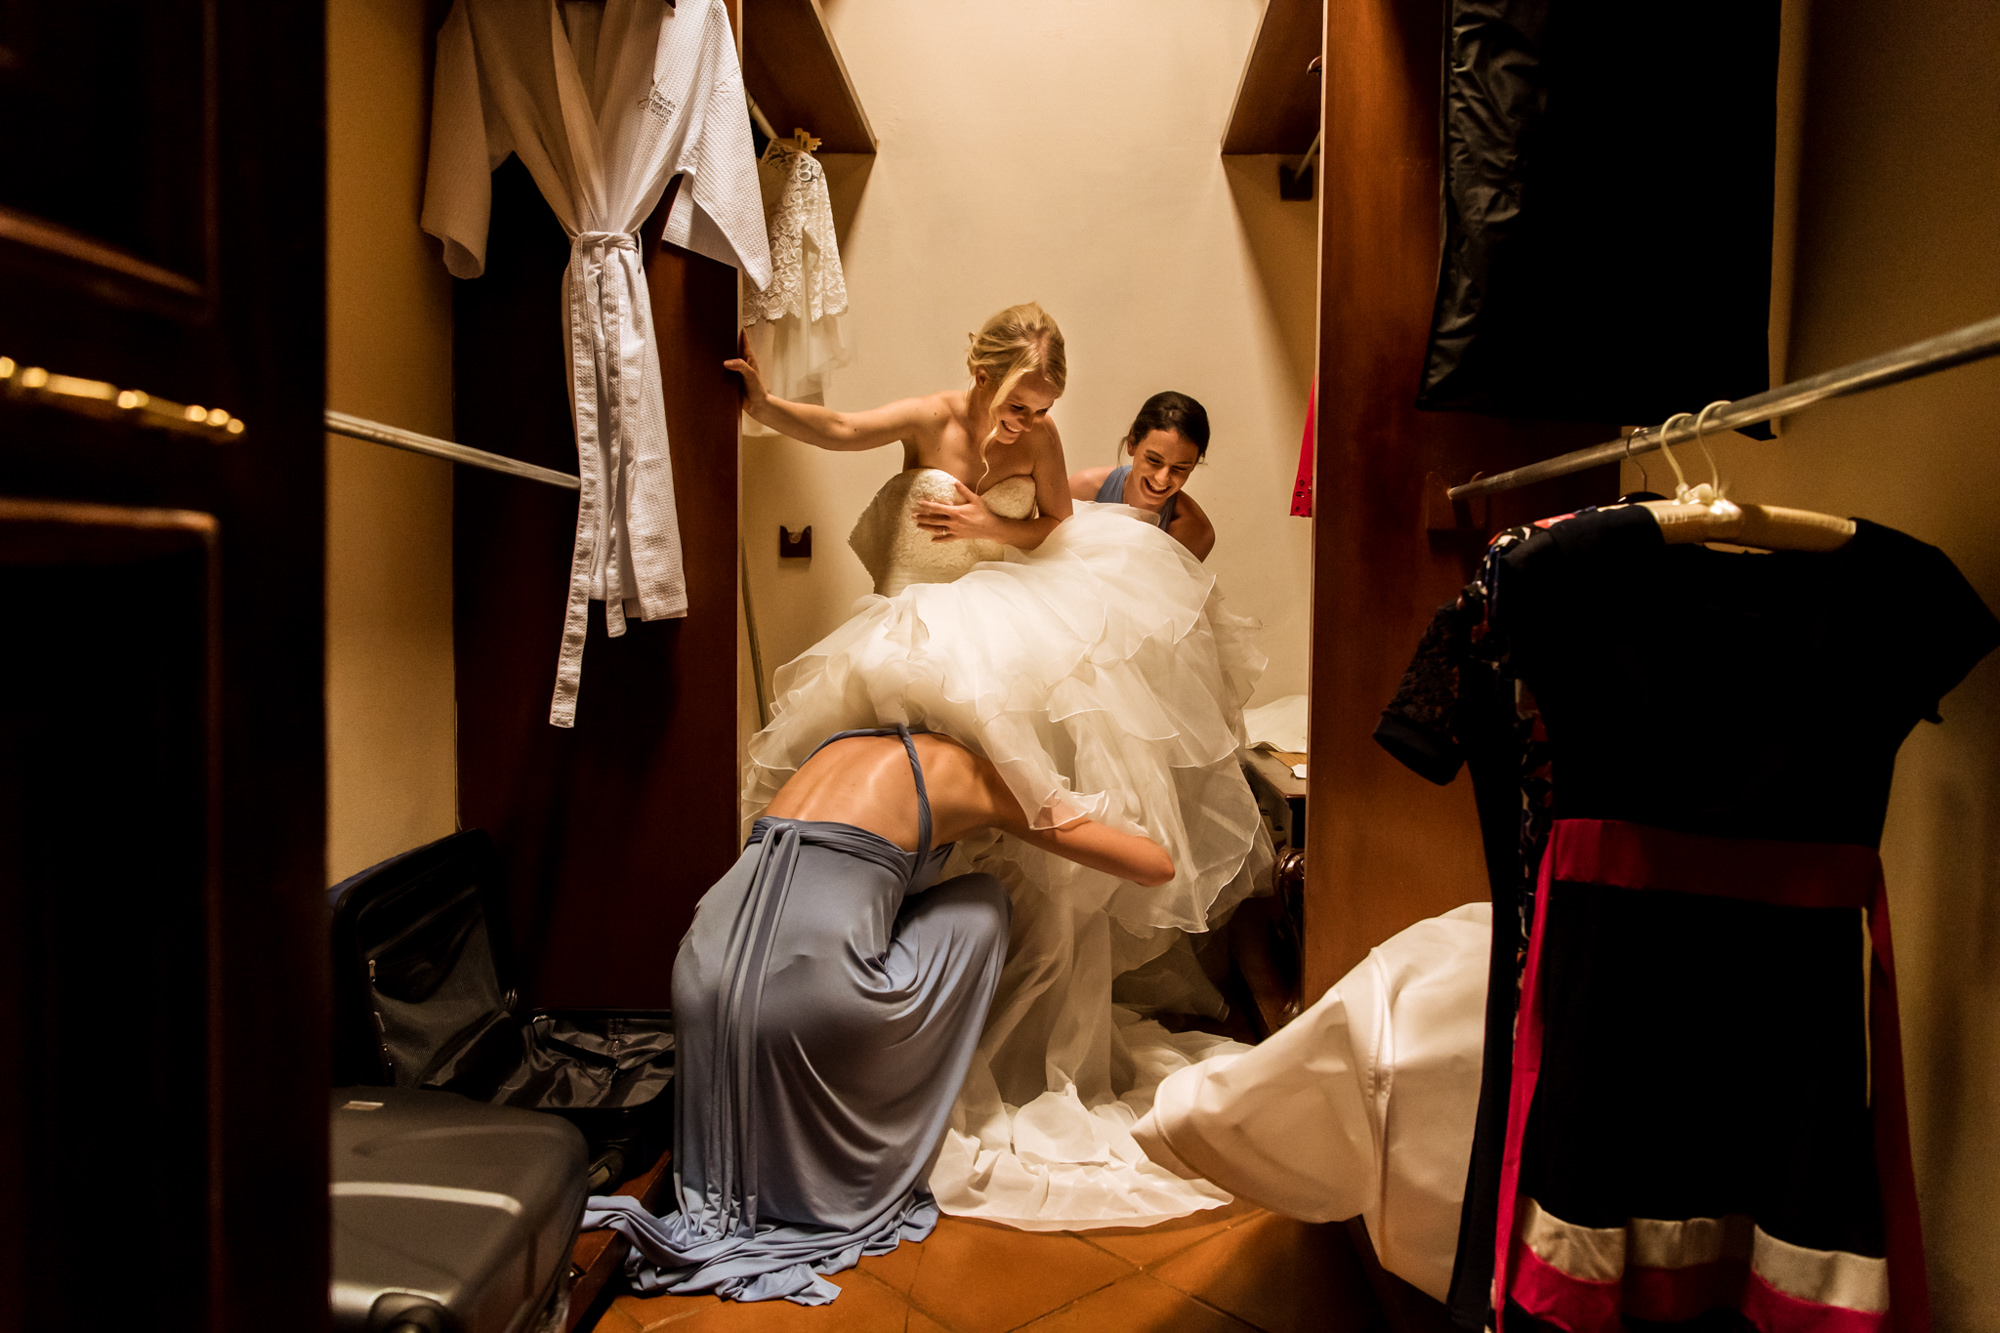 Bridesmaid underneath brides ruffled gown in closet photo by Fotobelle: Isabelle Hattink